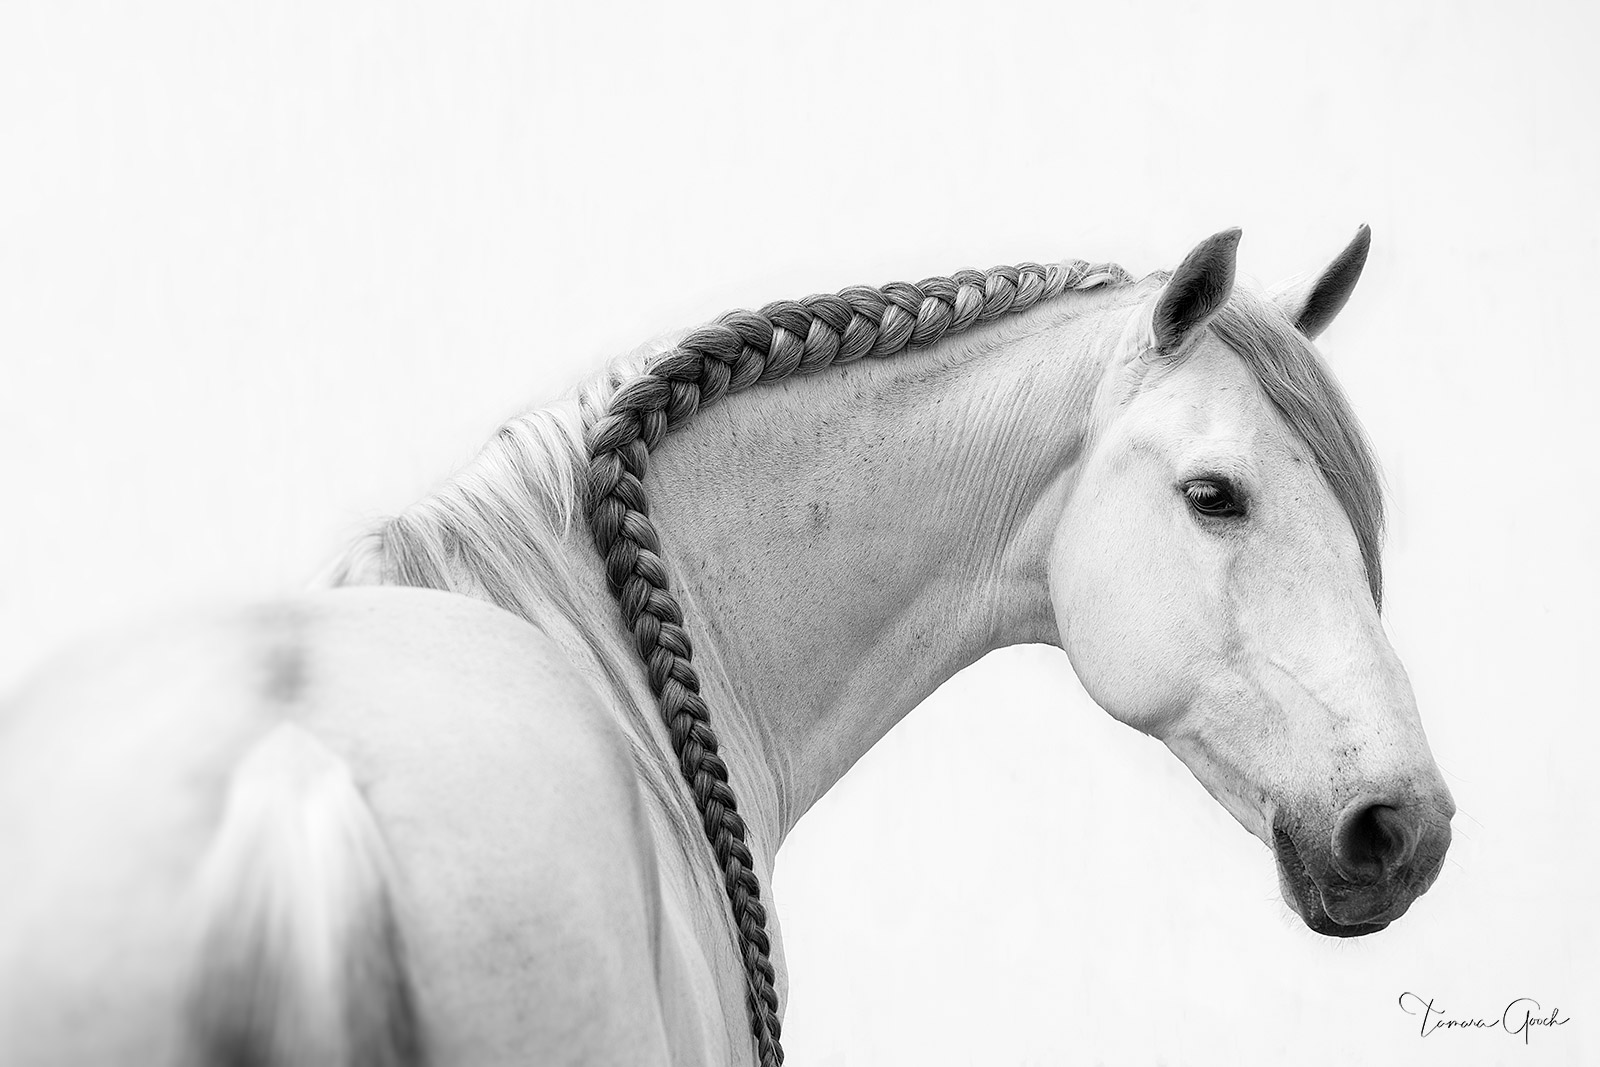 Warlander, high key, black and white, braided, gray, grey, horse, horse photography, equine, cheval, caballos, pferd, art, wall...